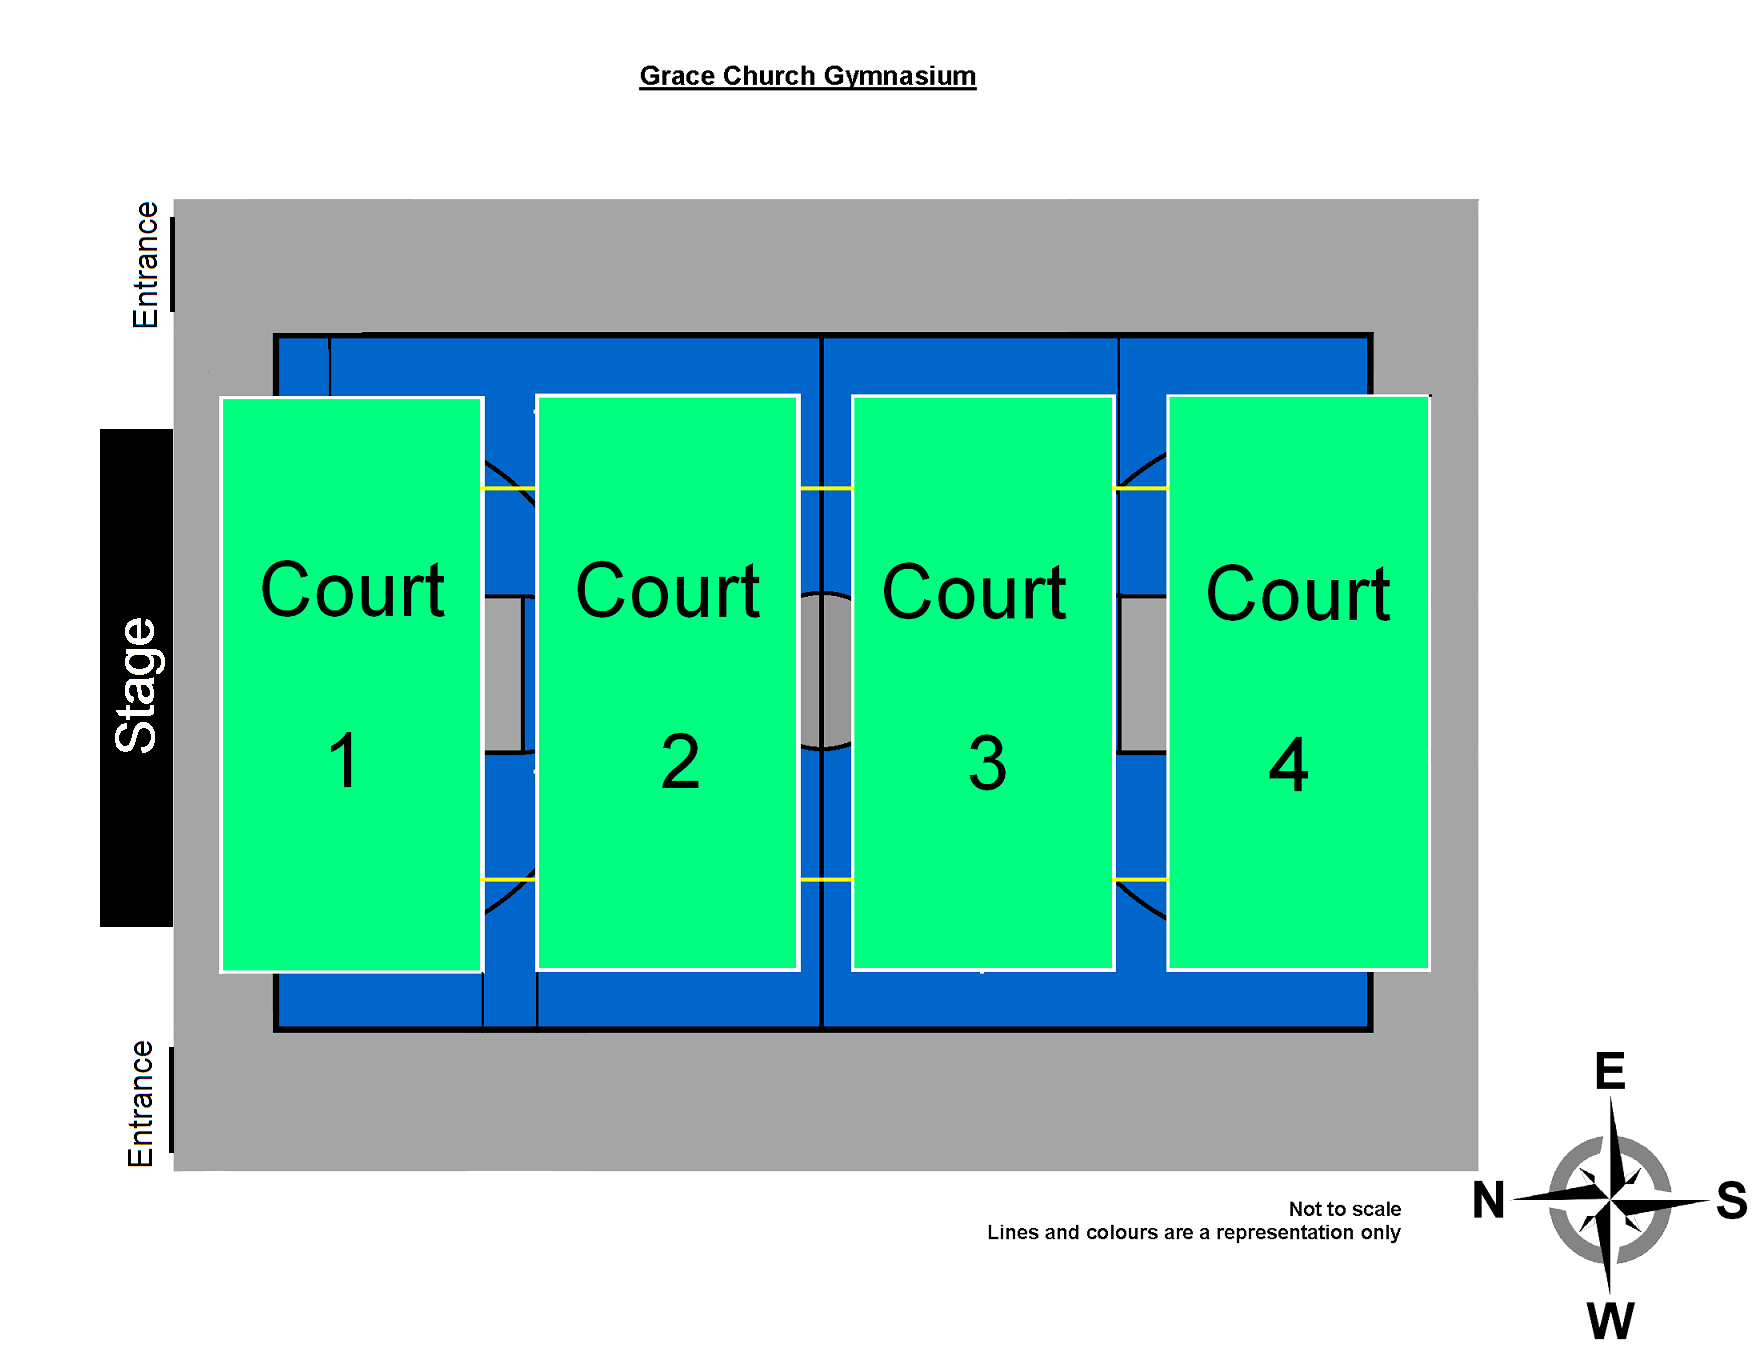 Layout of main gym badminton courts